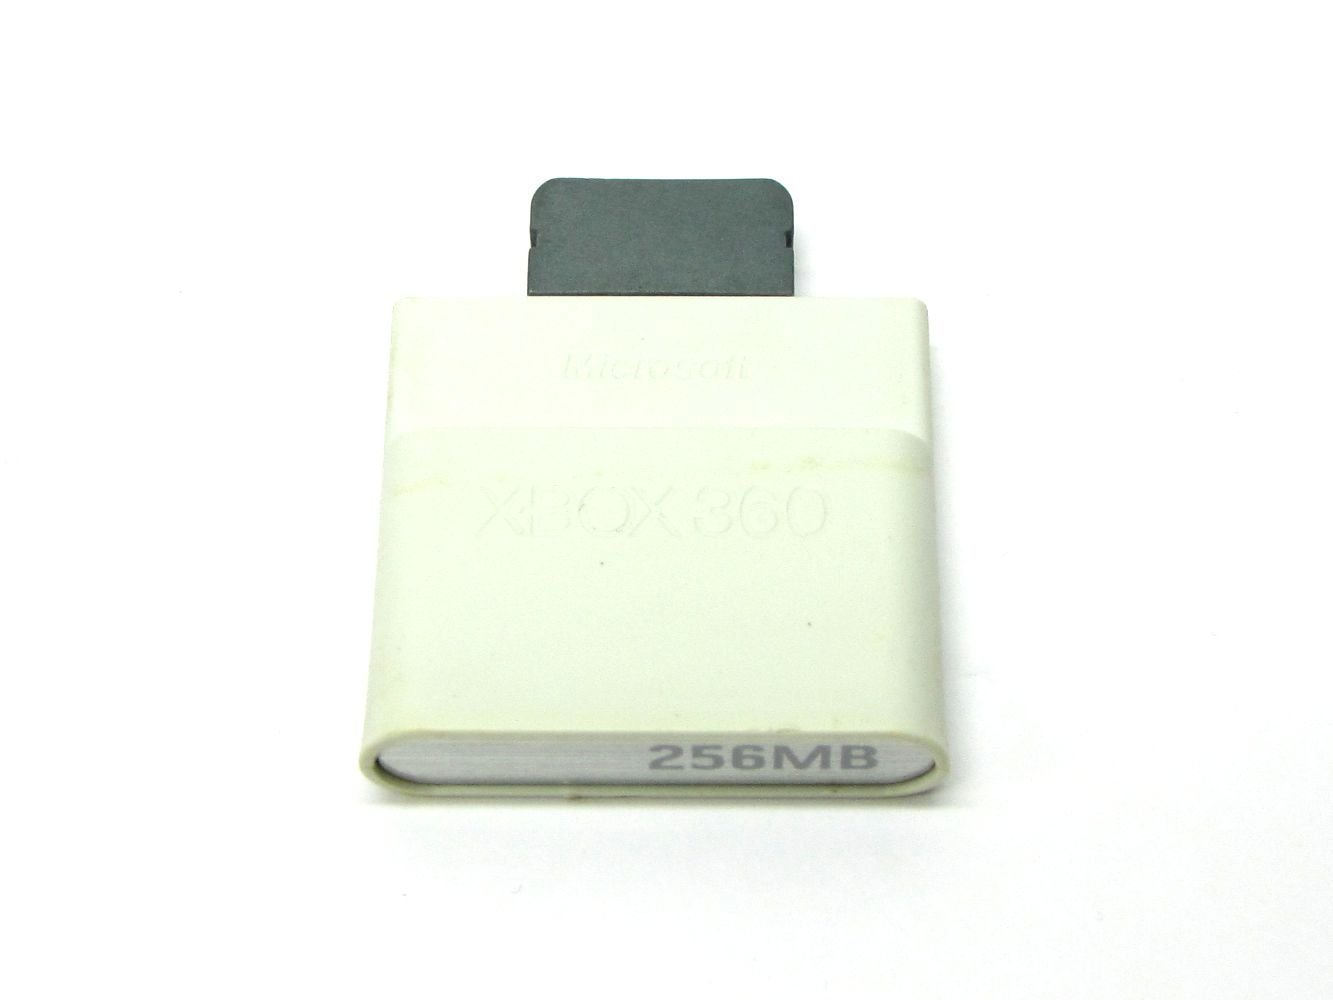 Xbox 360 256MB Memory Unit (original Xbox 360 console only) (Renewed) by Microsoft